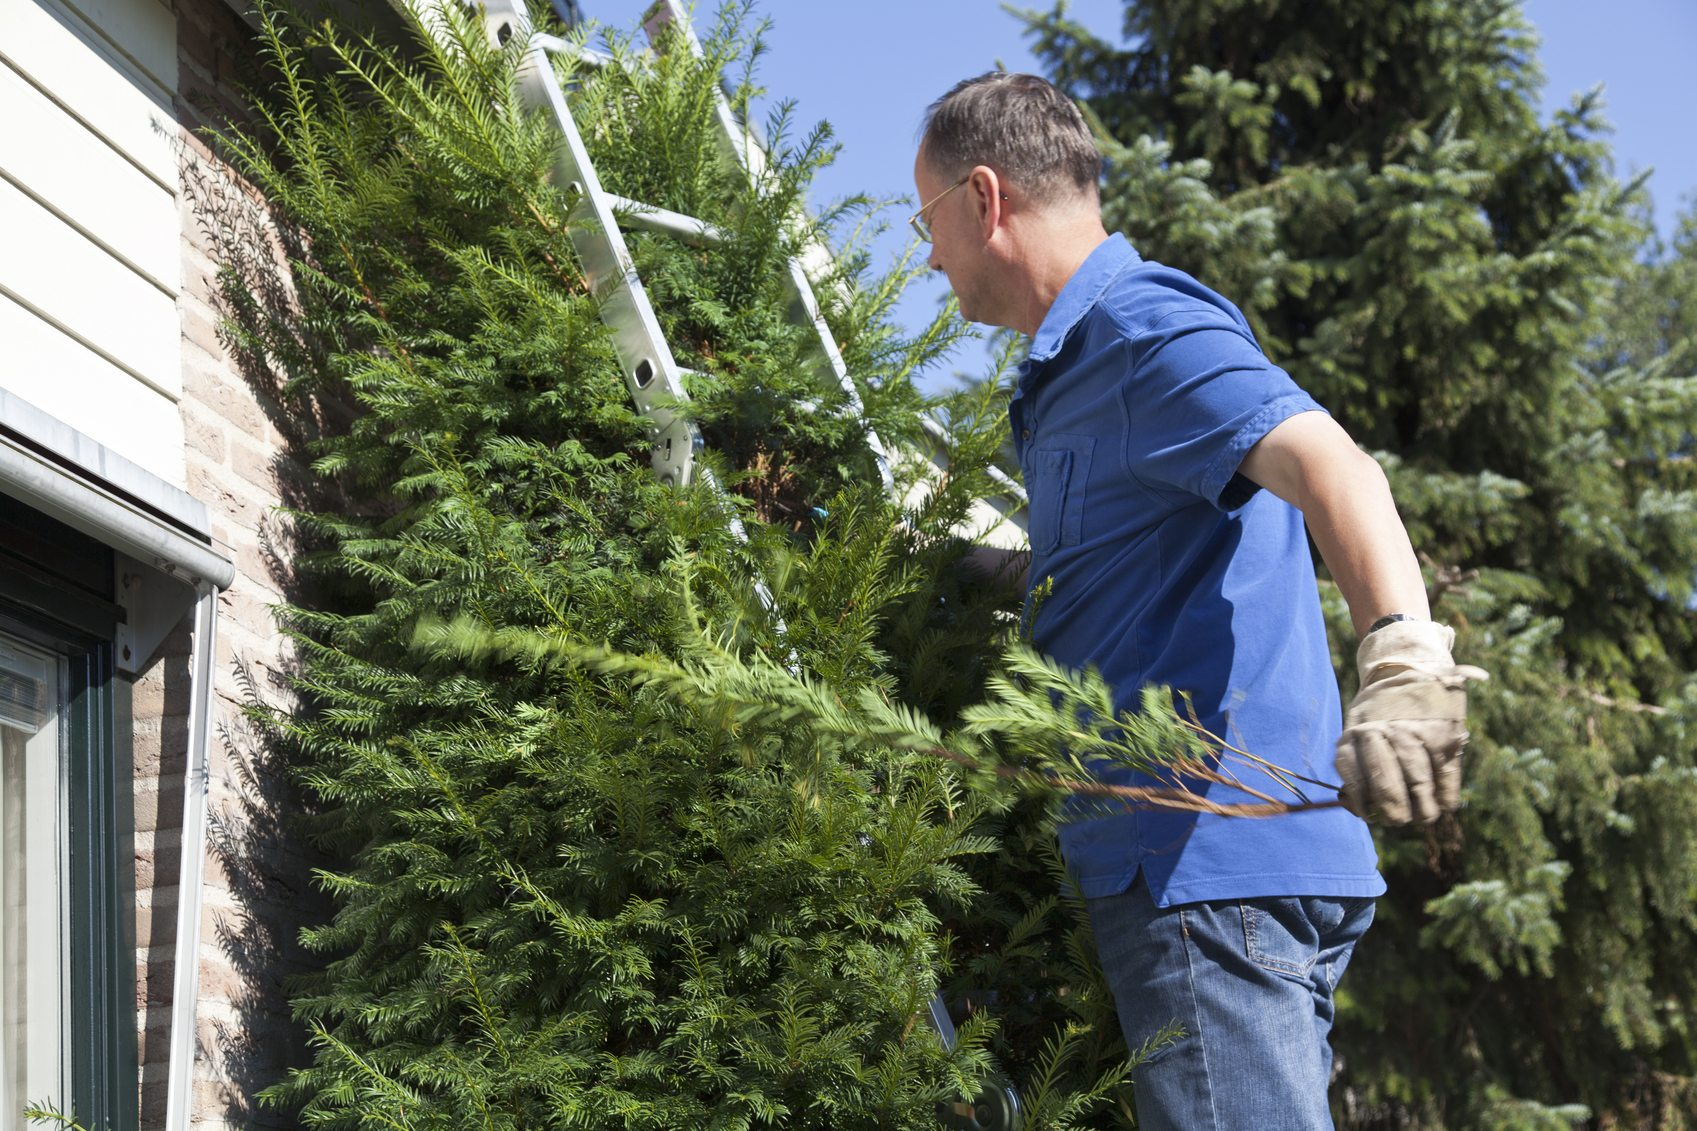 Tips On Pruning Japanese Yews Cutting Back Japanese Yews In The